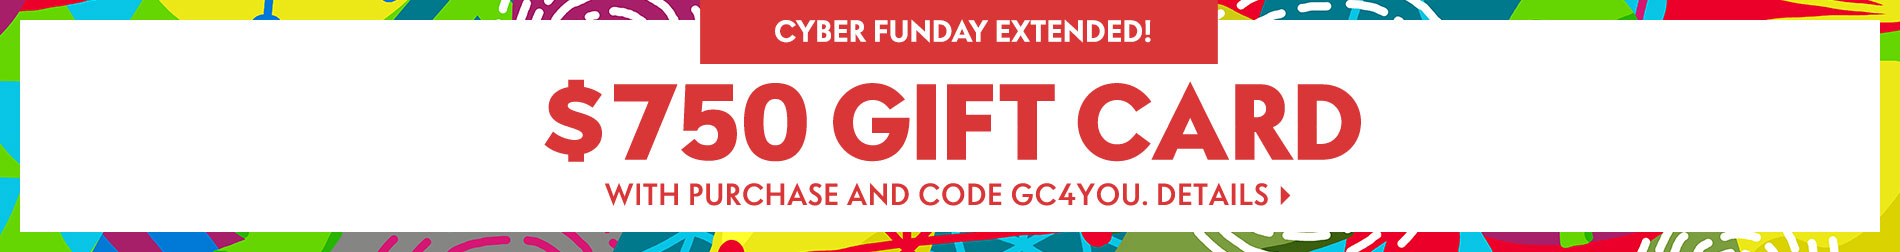 Cyber Funday Extended! $750 Gift Card with purchase and code GC4YOU